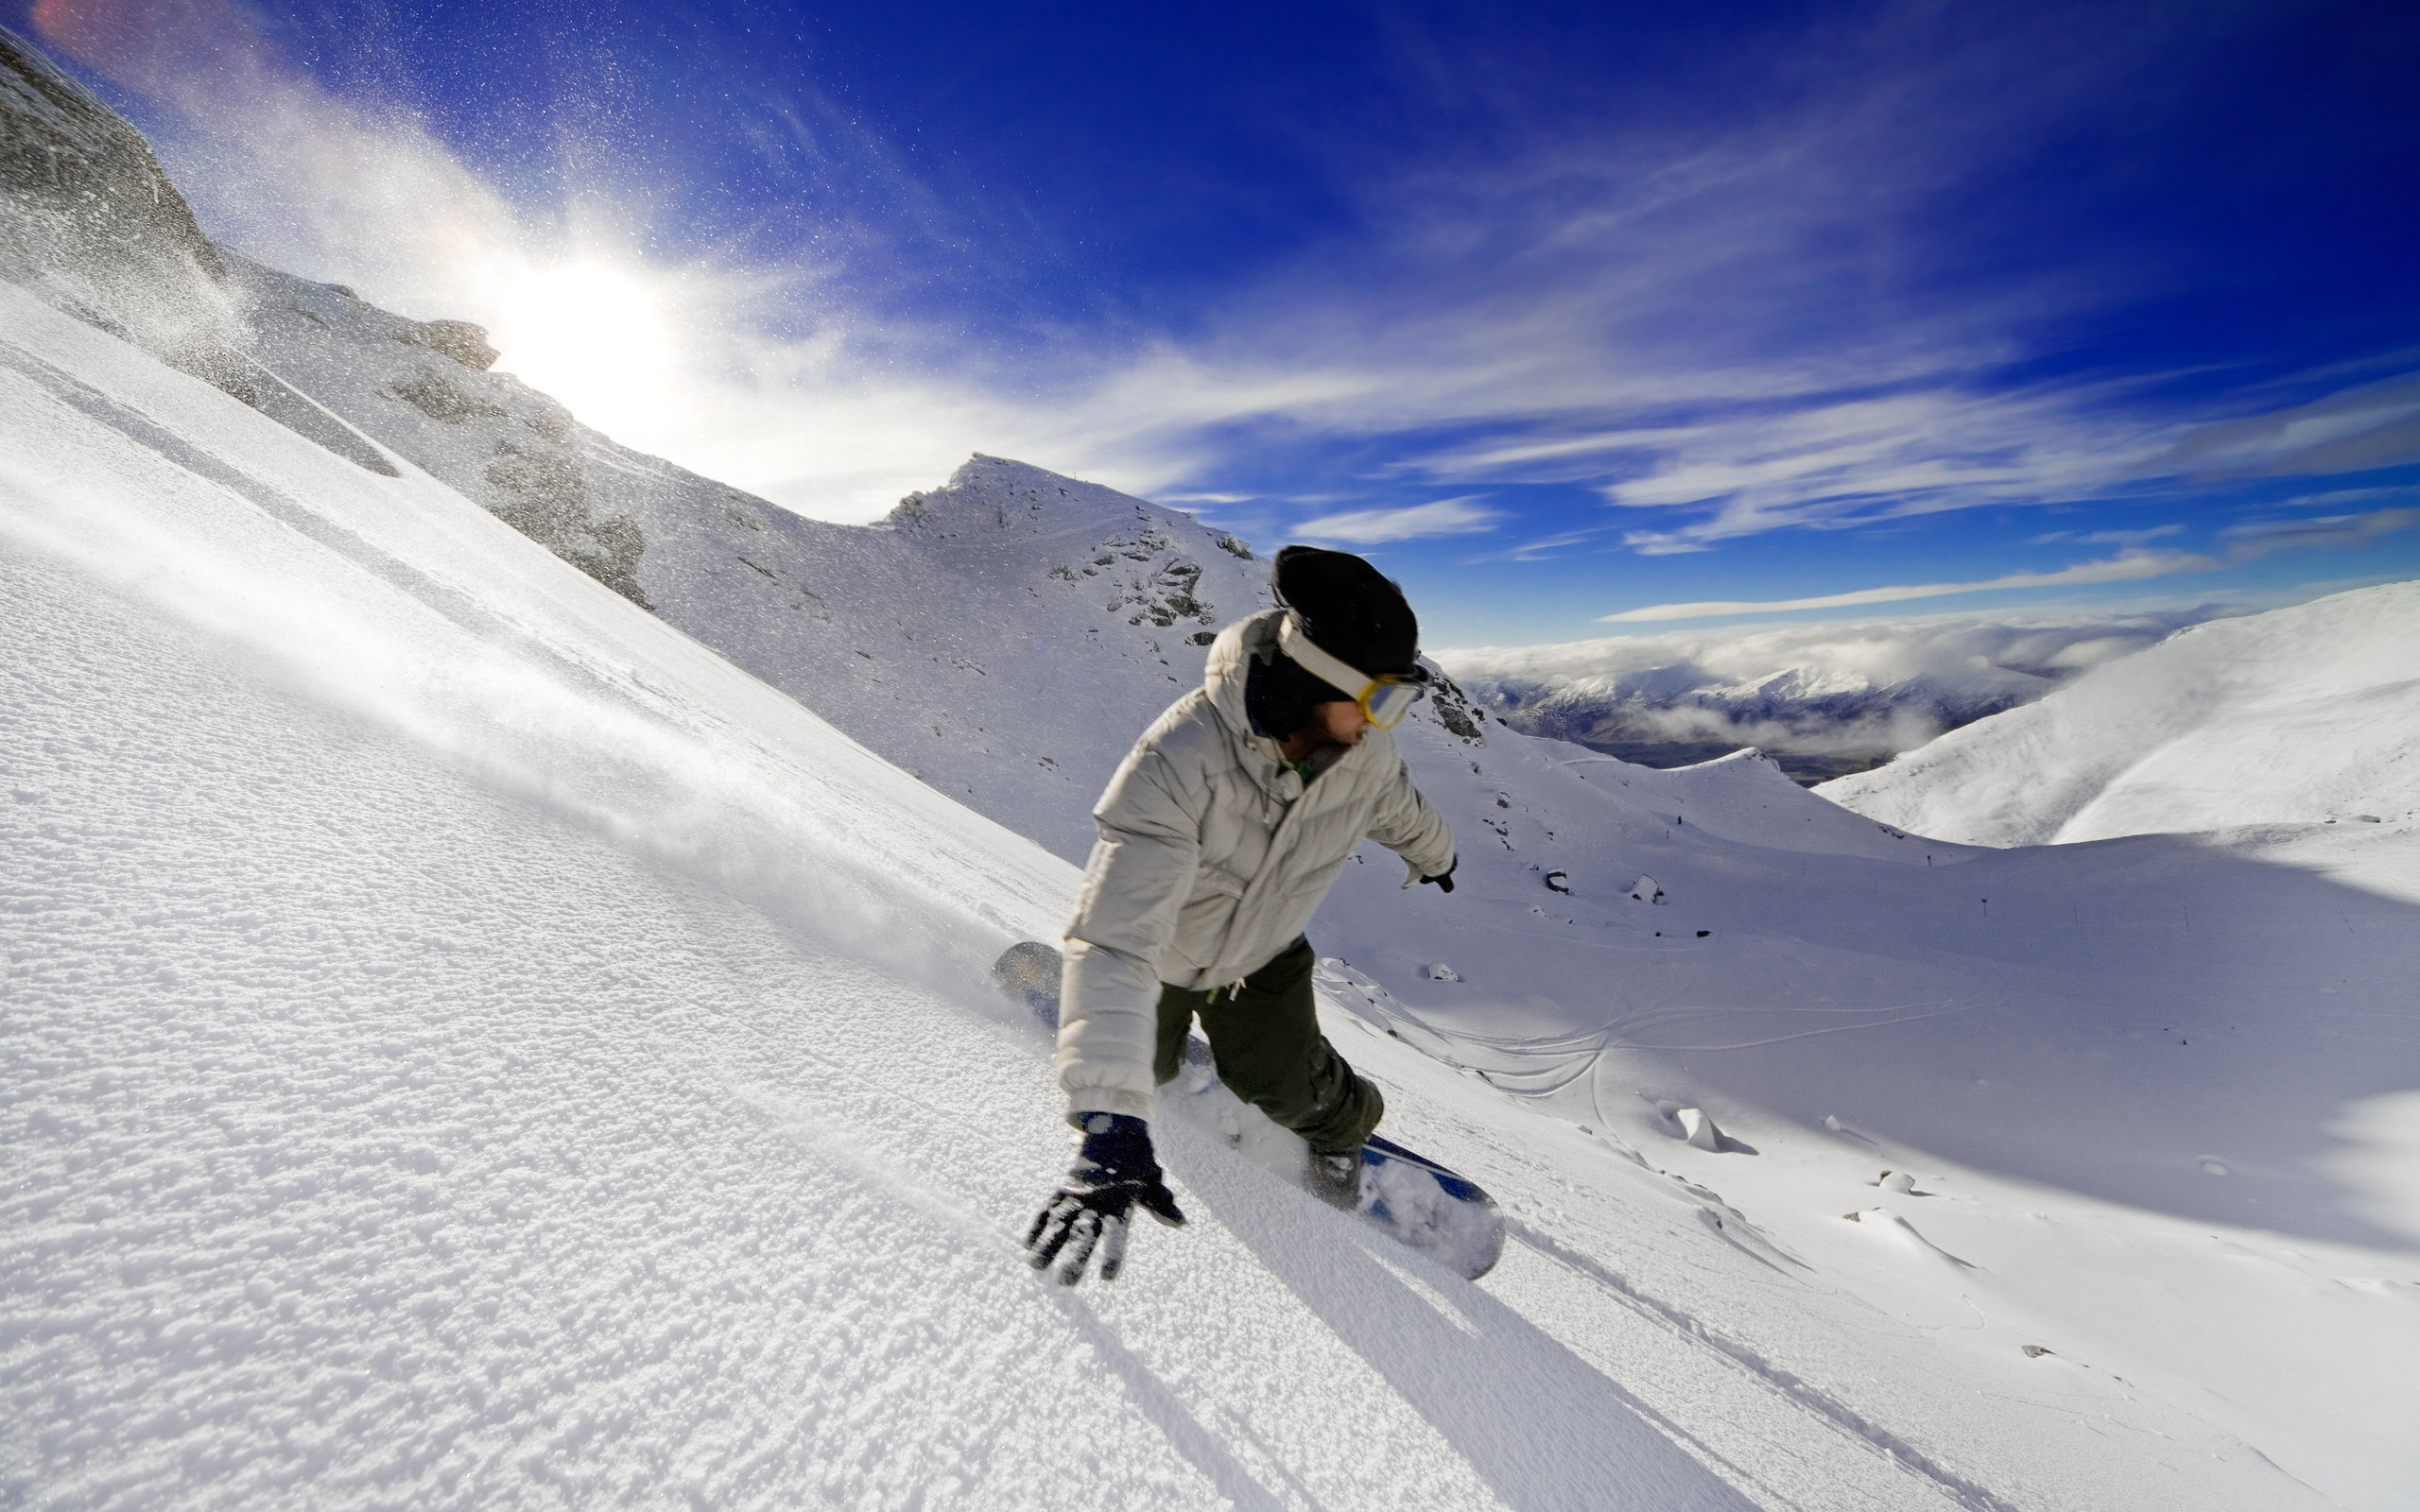 pin snow snowboard mountains - photo #36